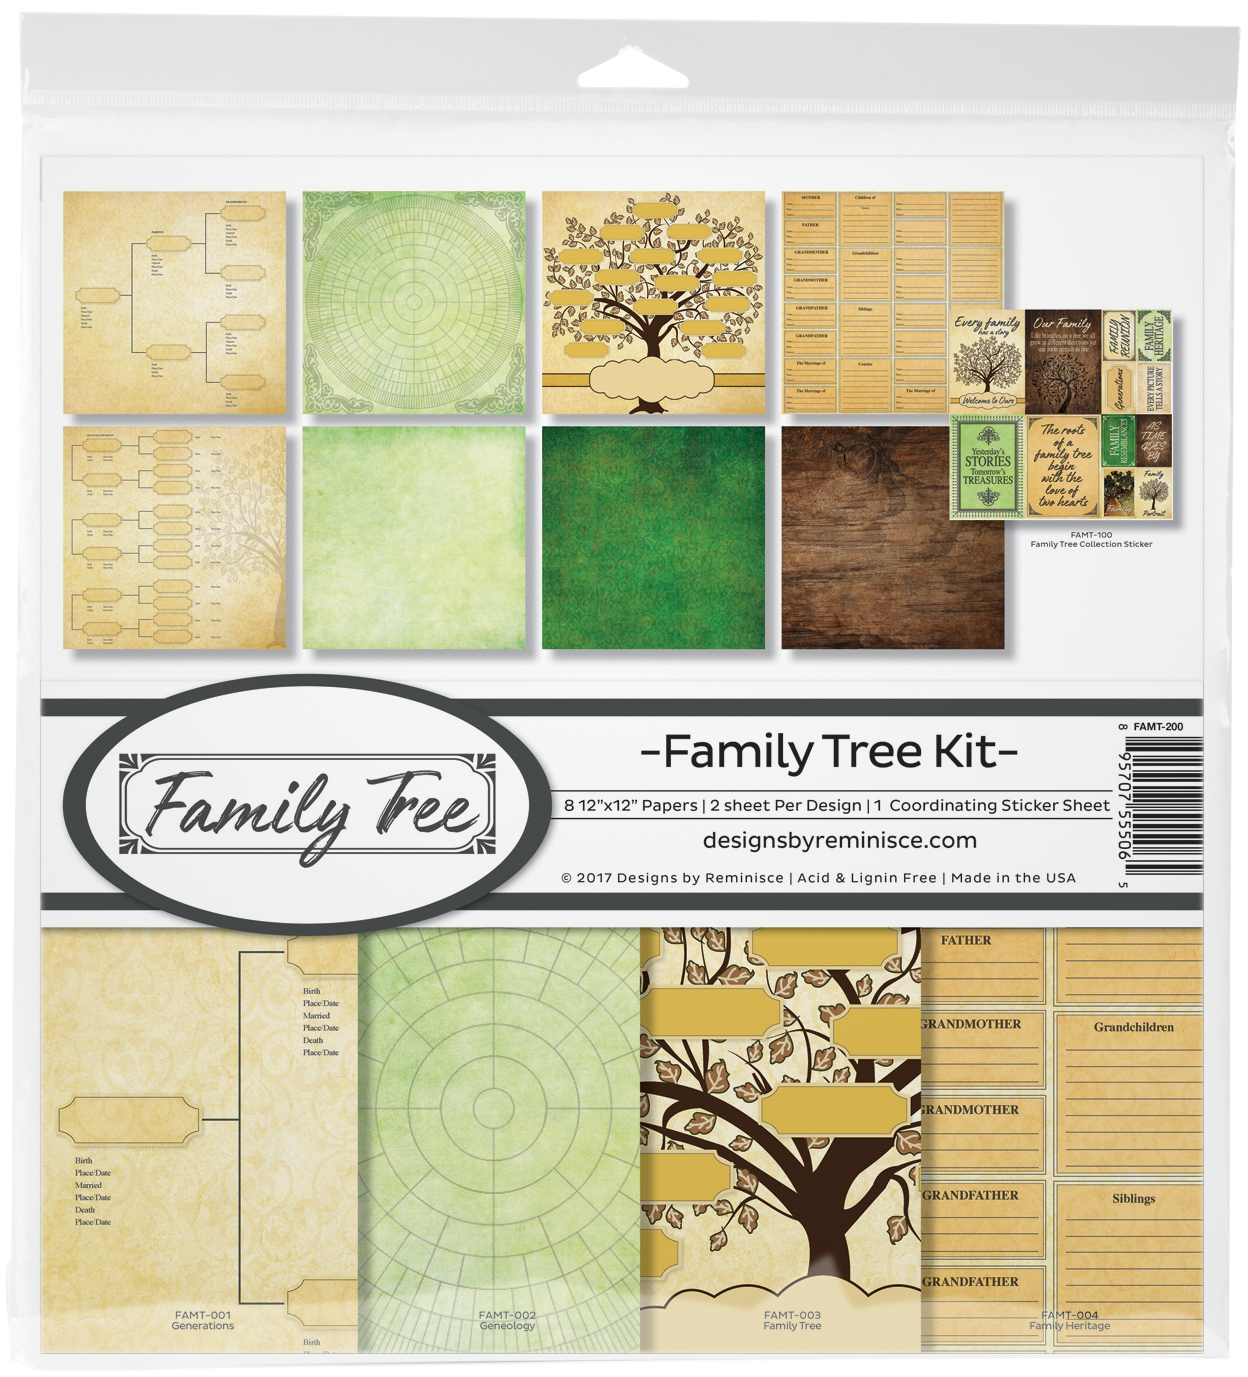 Reminisce Collection Kit 12'x12' - Family Tree